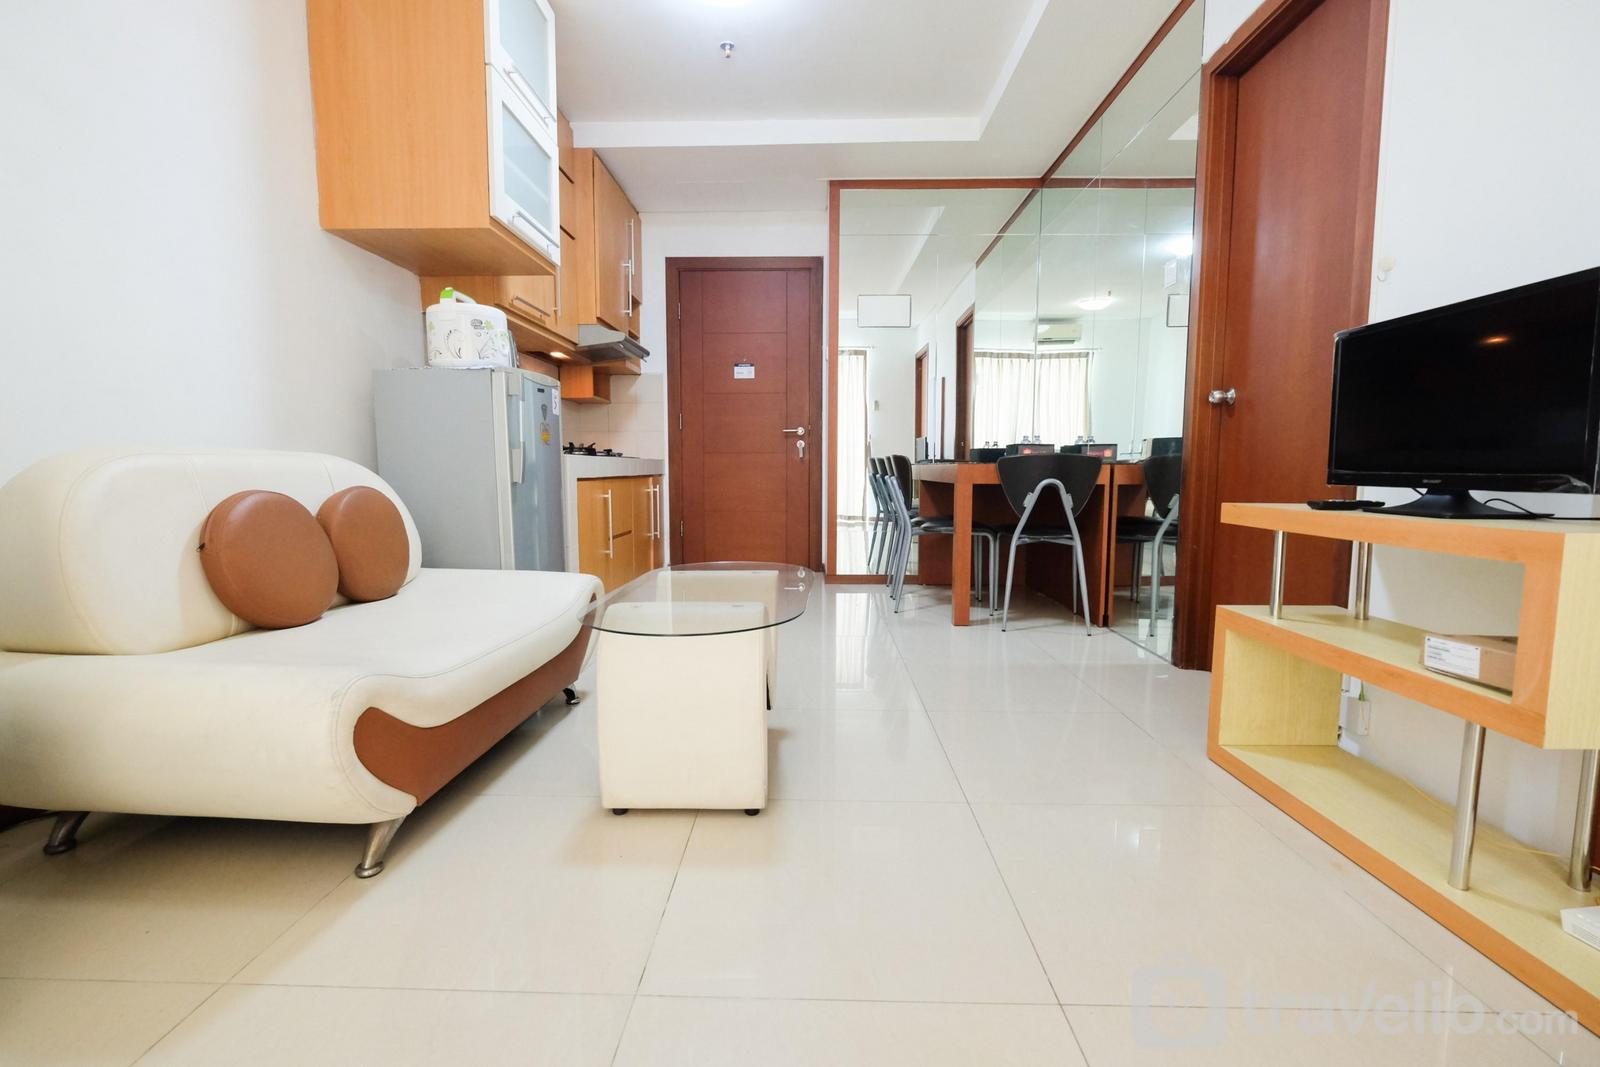 Thamrin Residence - Compact Minimalist 1BR Apartment at Thamrin Residence By Travelio